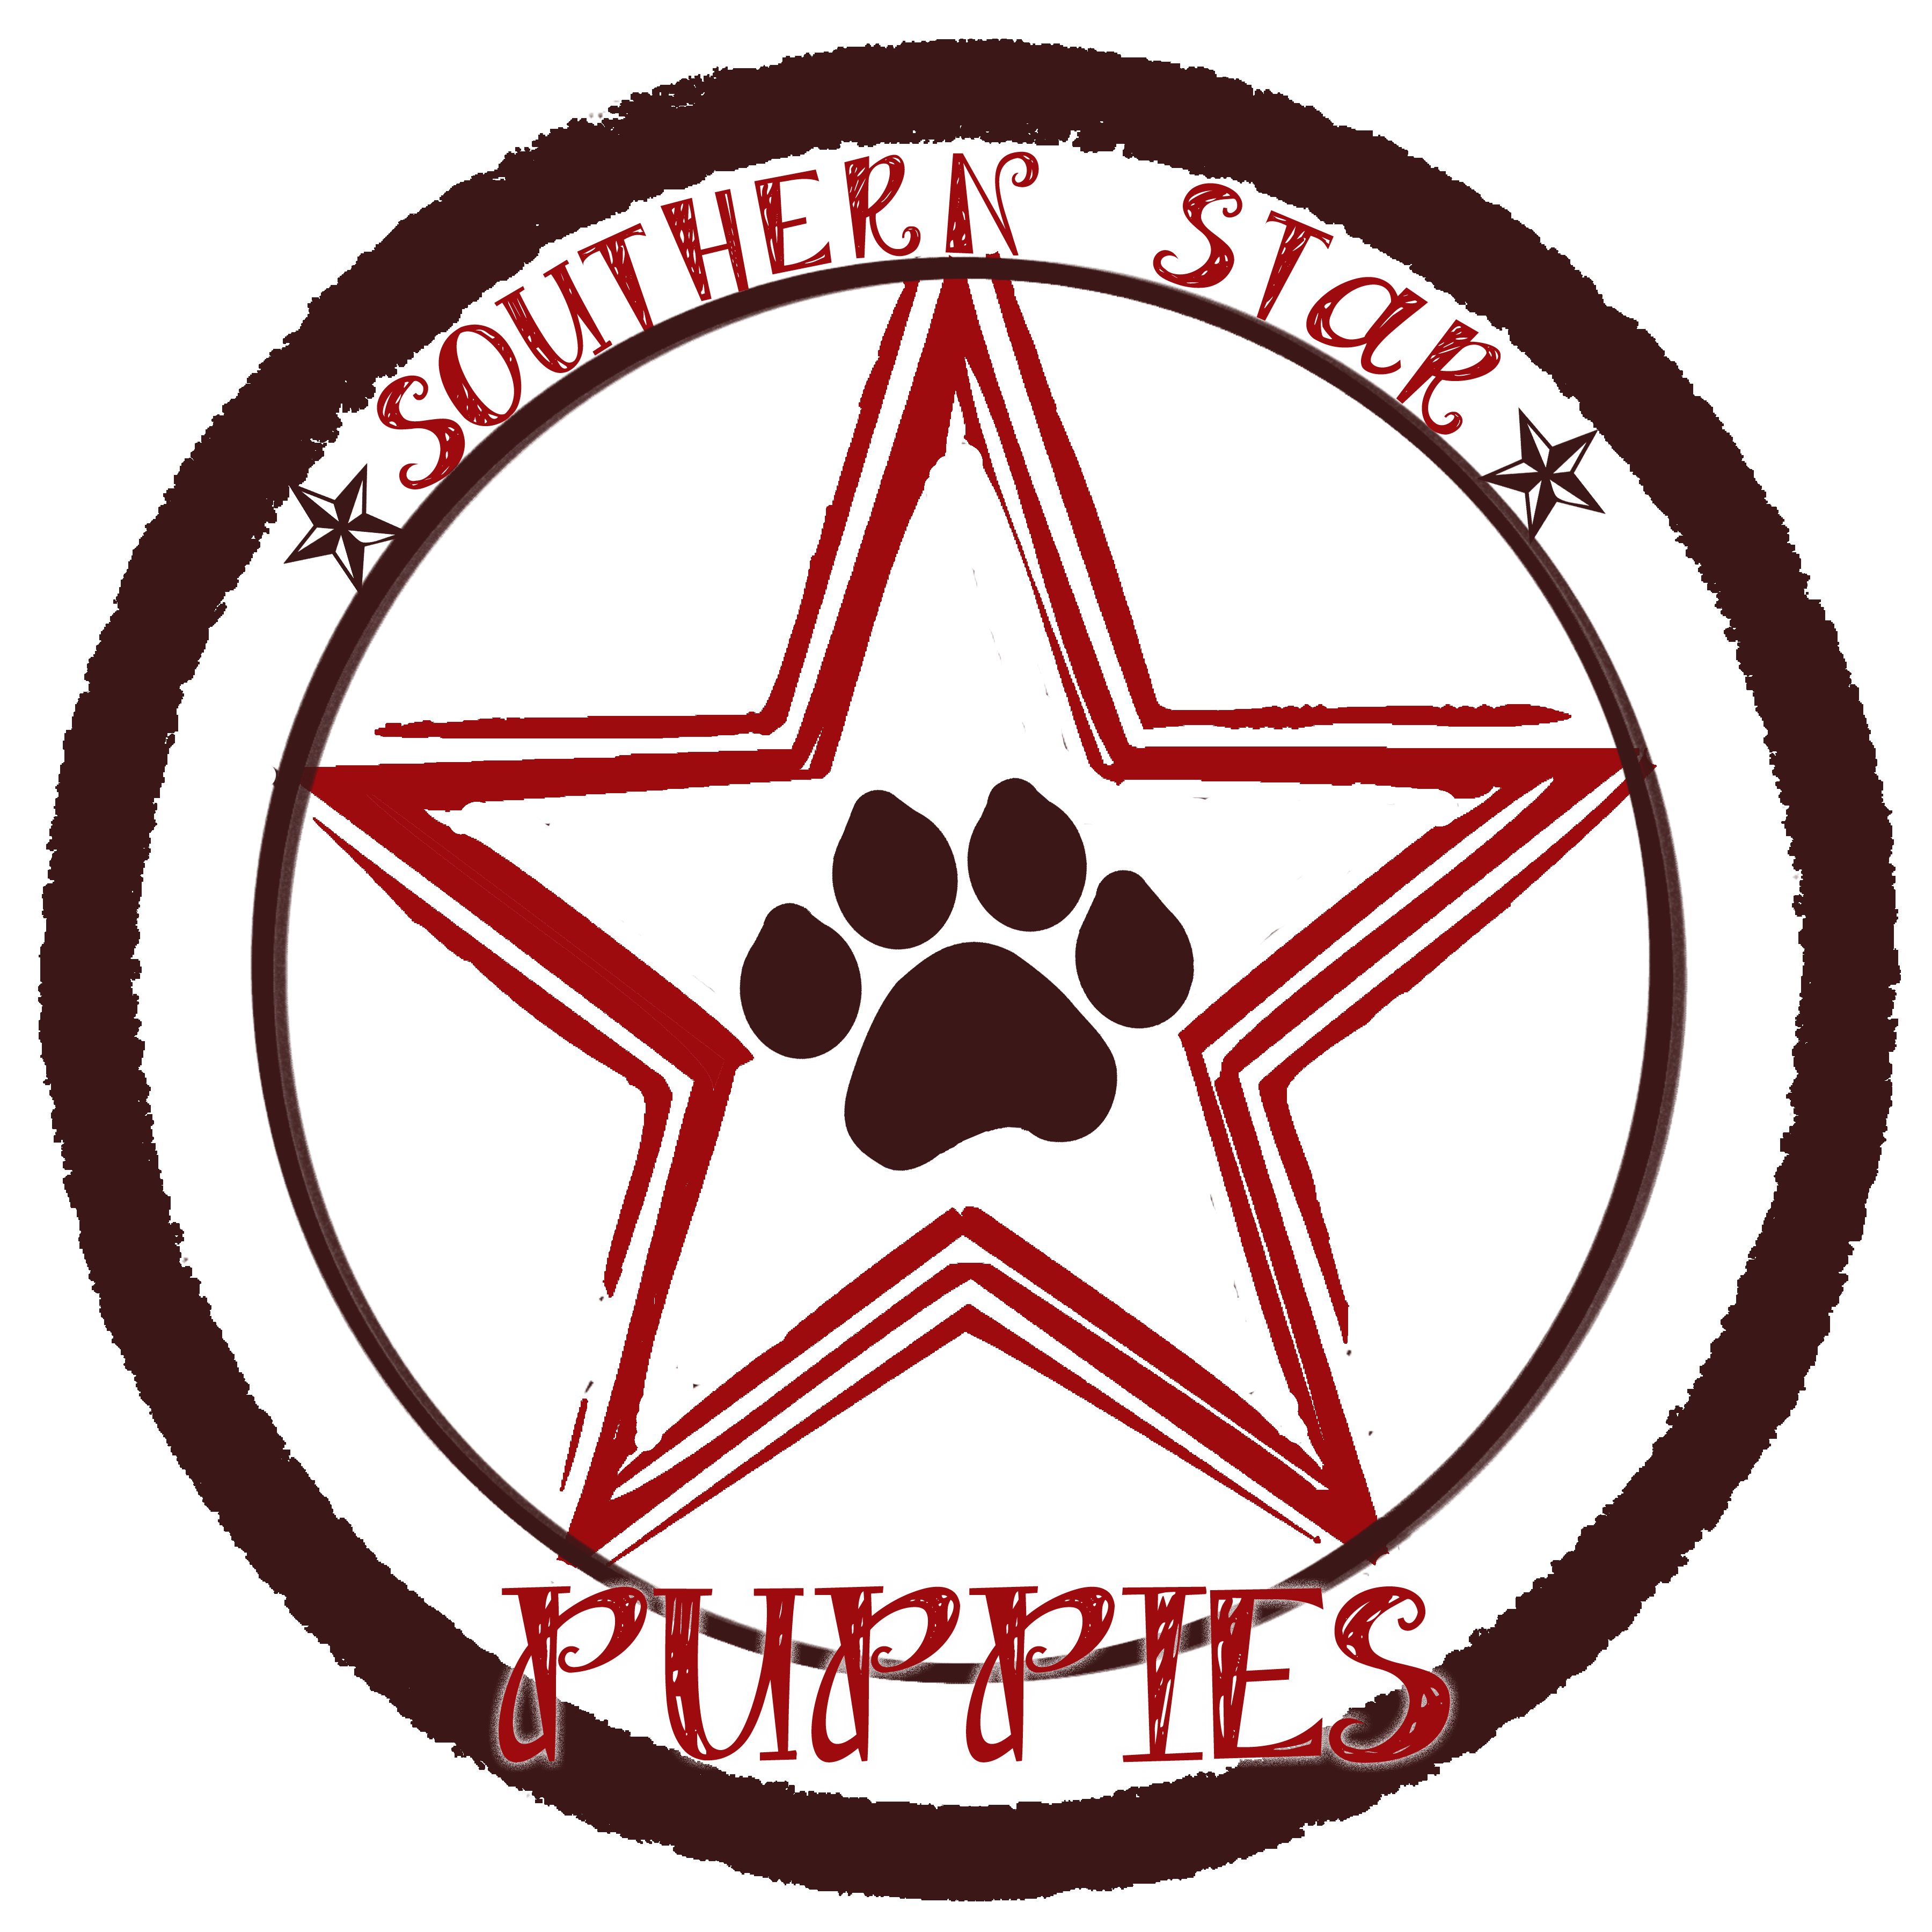 Southern Star Puppies